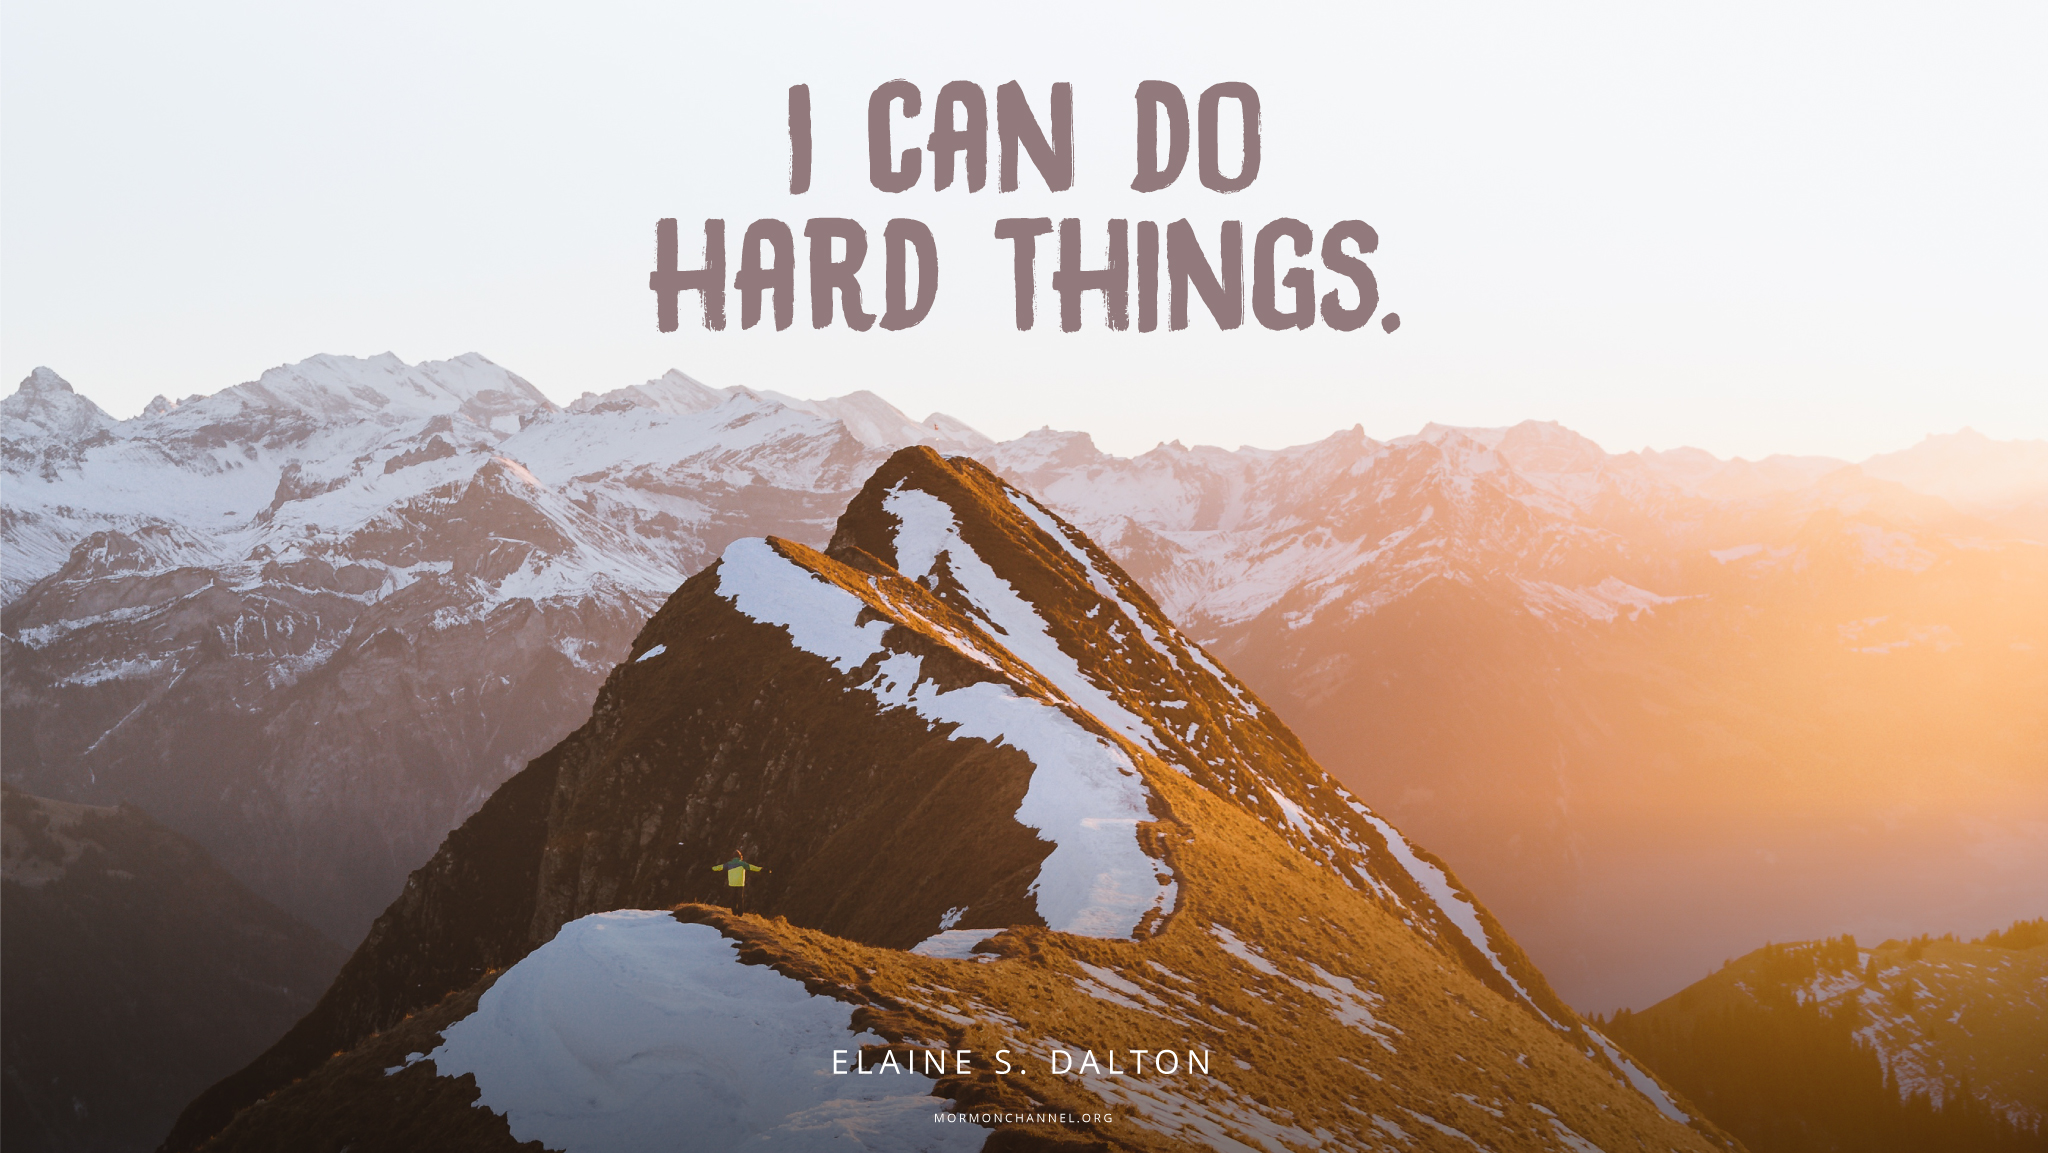 Daily Quote: I Can Do Hard Things | Mormon Channel